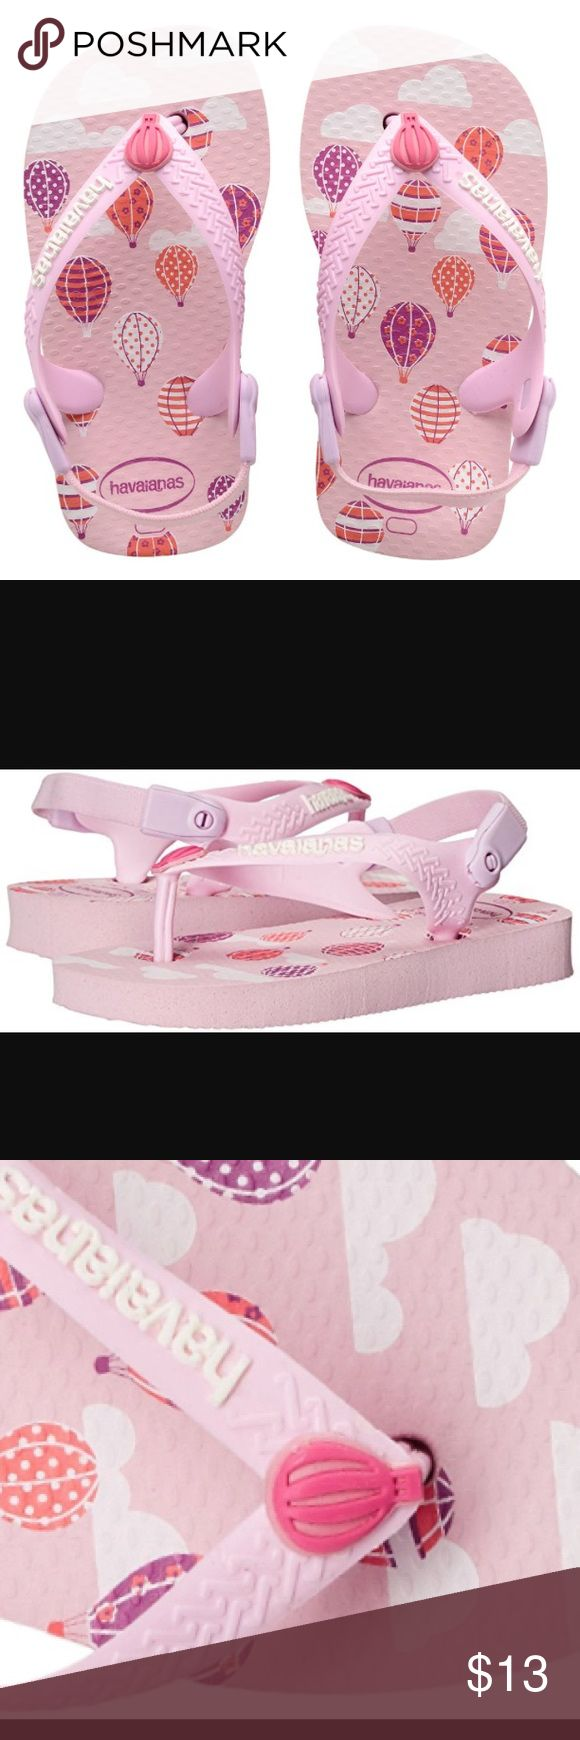 Havaianas Baby Chic Aus Hot Air Balloon Sandal Thong style with sling back strap Cushioned footbed with textured rice pattern and rubber flip flop sole Made in Brazil Baby style reaches new heights with the baby chic aus. Hot air balloons float across a pink cloud-printed sole and  fabric sling back straps keep tiny feet comfortable and secure. Havaianas Shoes Sandals & Flip Flops